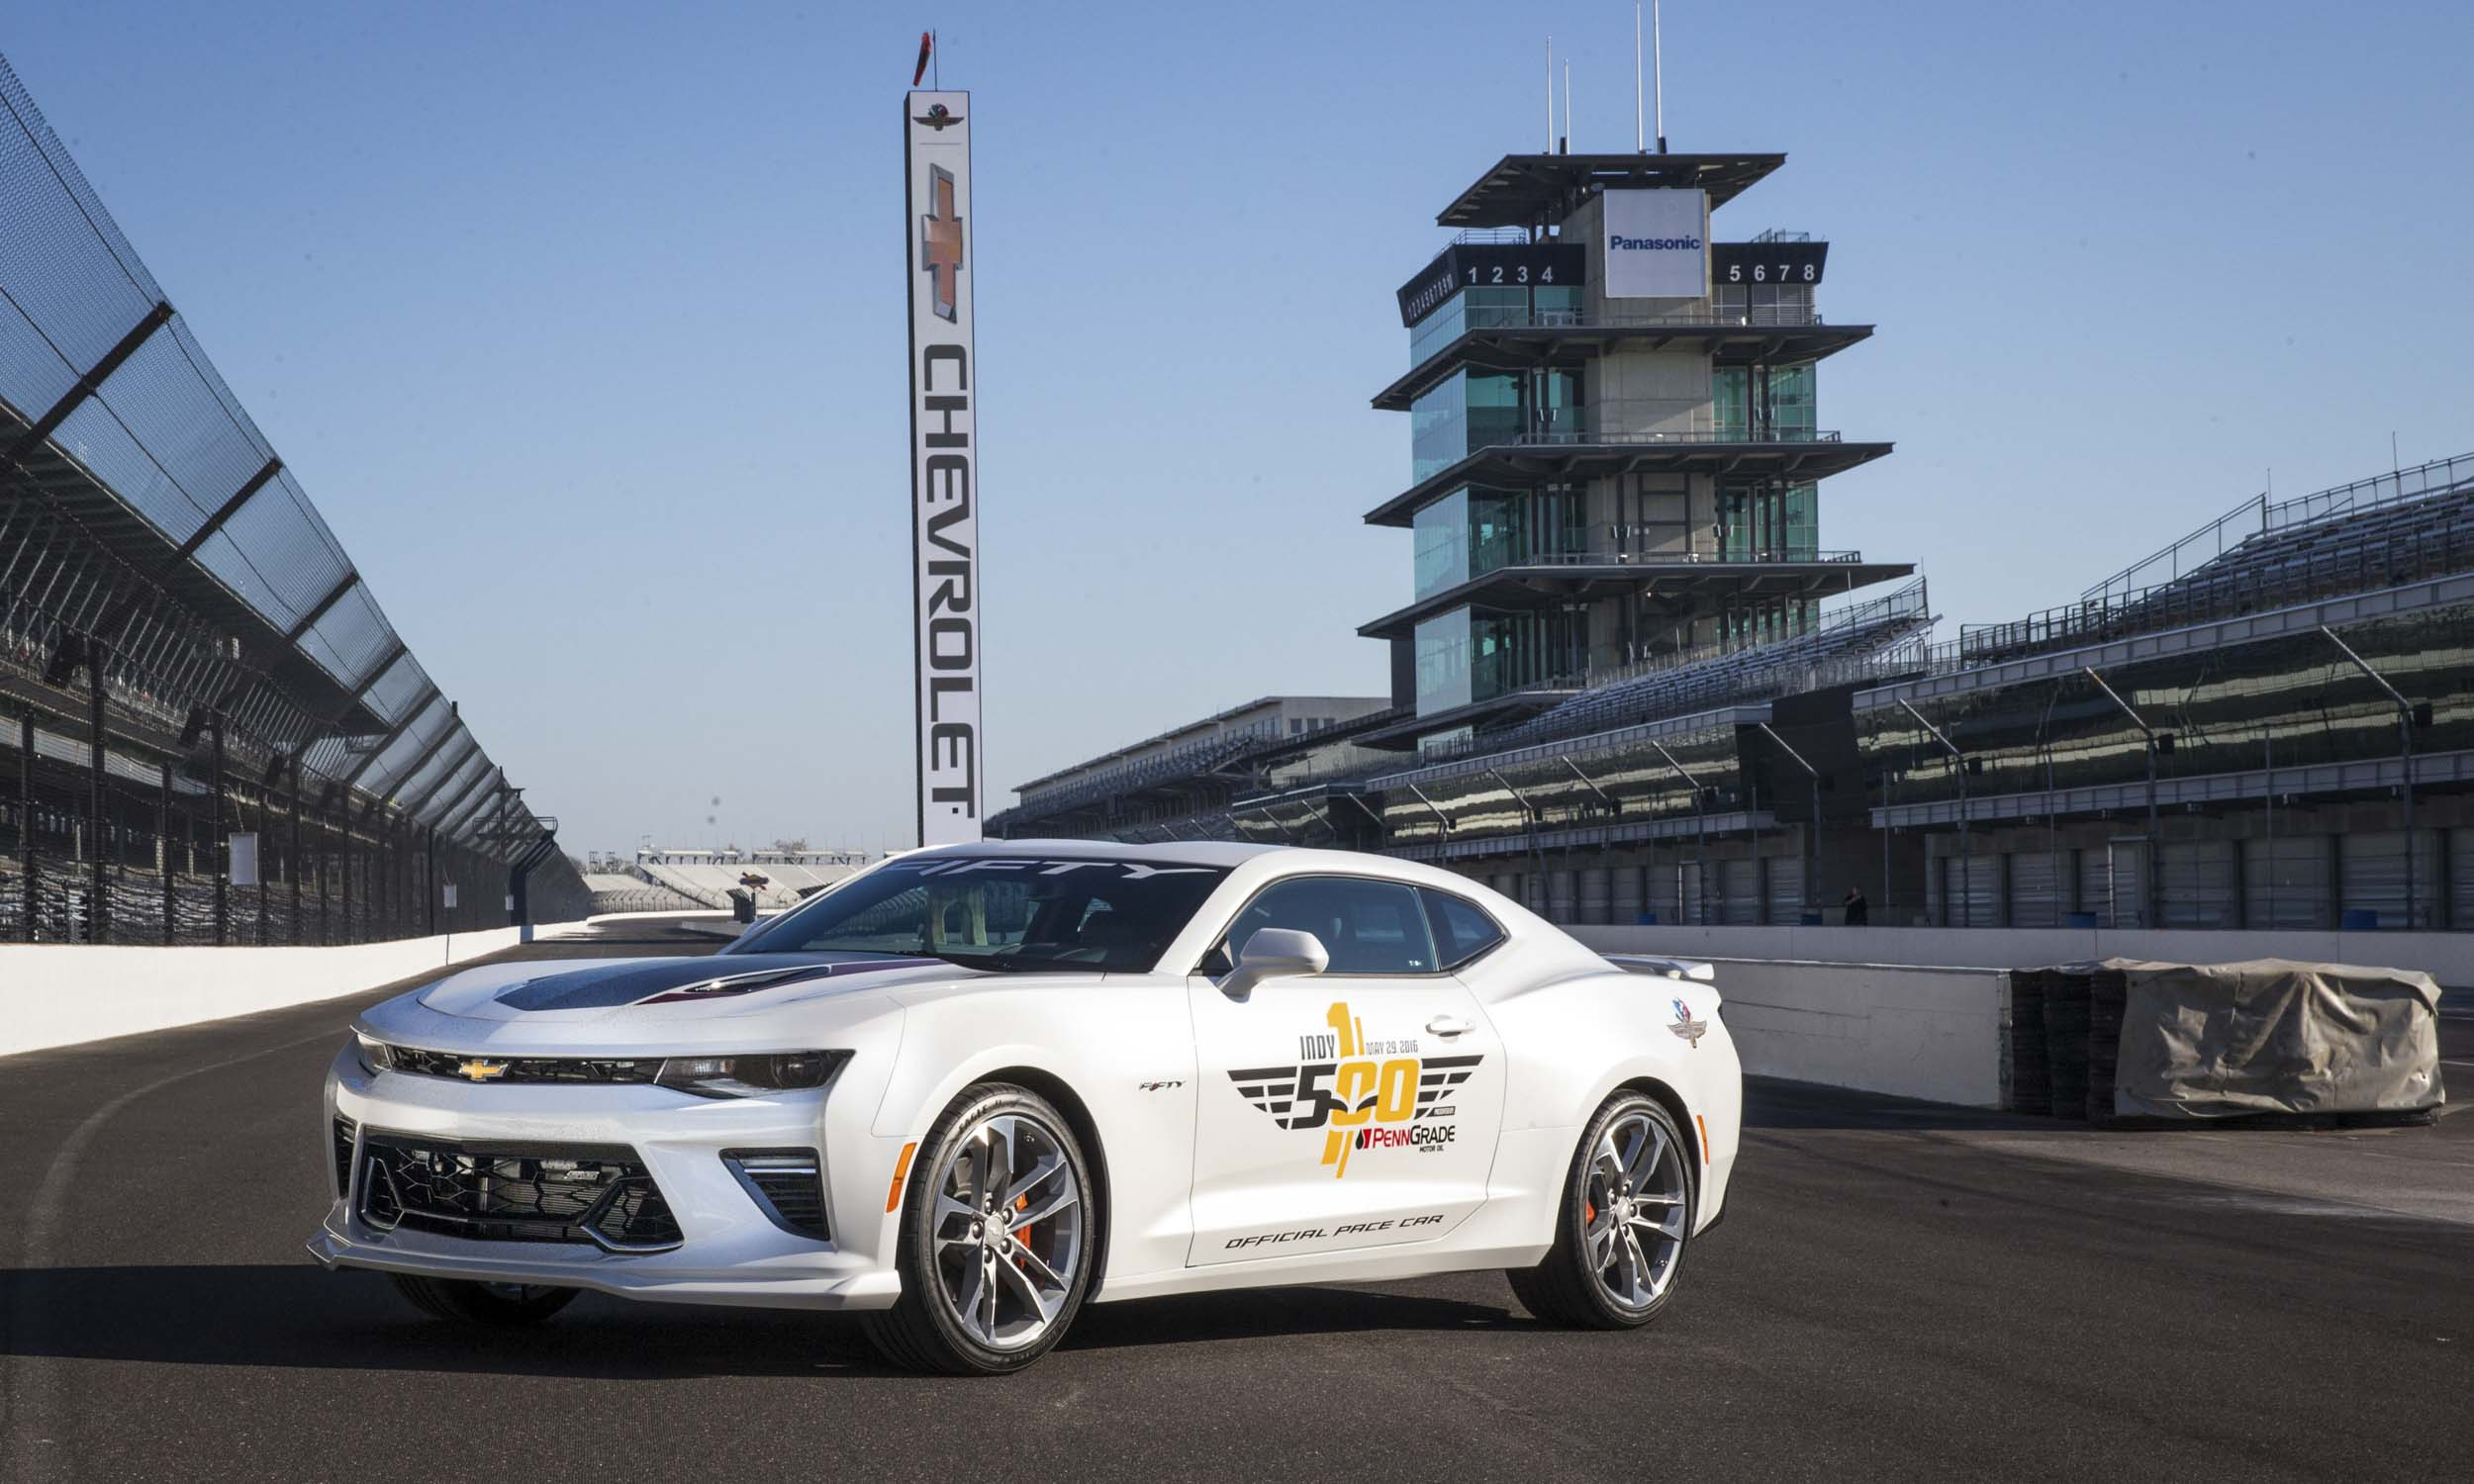 © Bret Kelley/IMS for Chevrolet